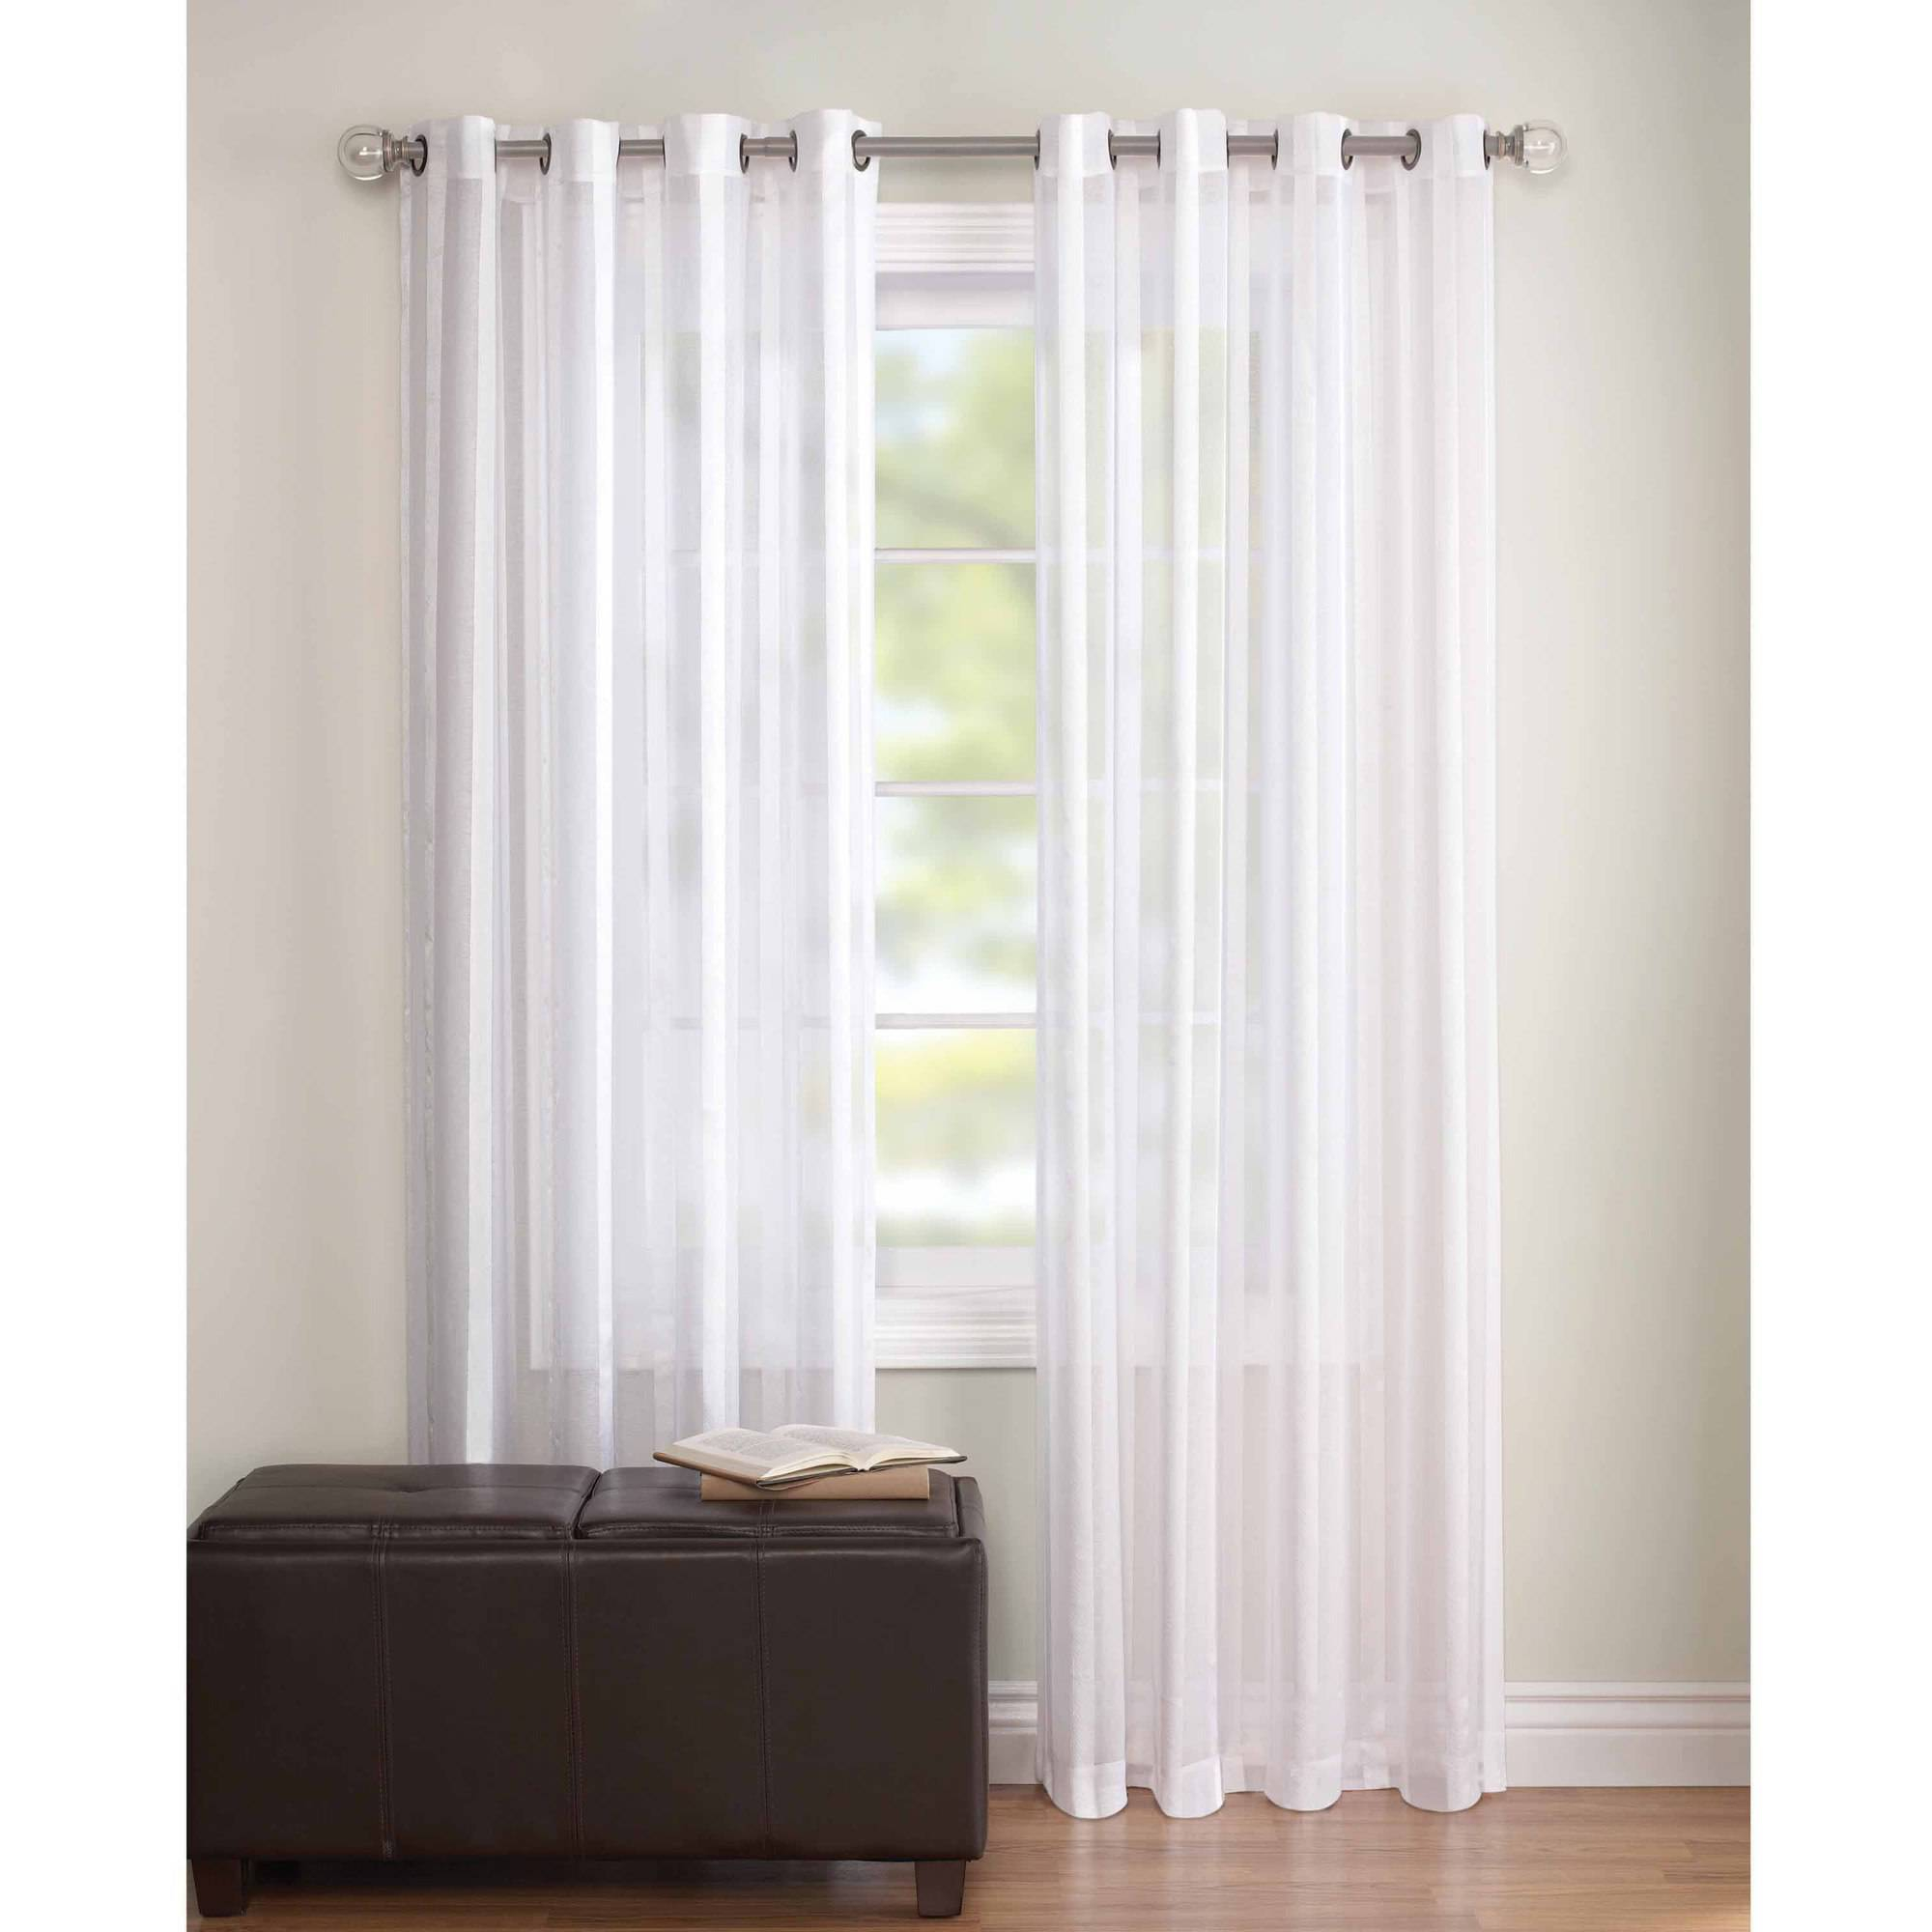 Lovely Better Homes And Gardens Embroidered Sheer Curtain Panel - Walmart for Walmart Living Room Curtains